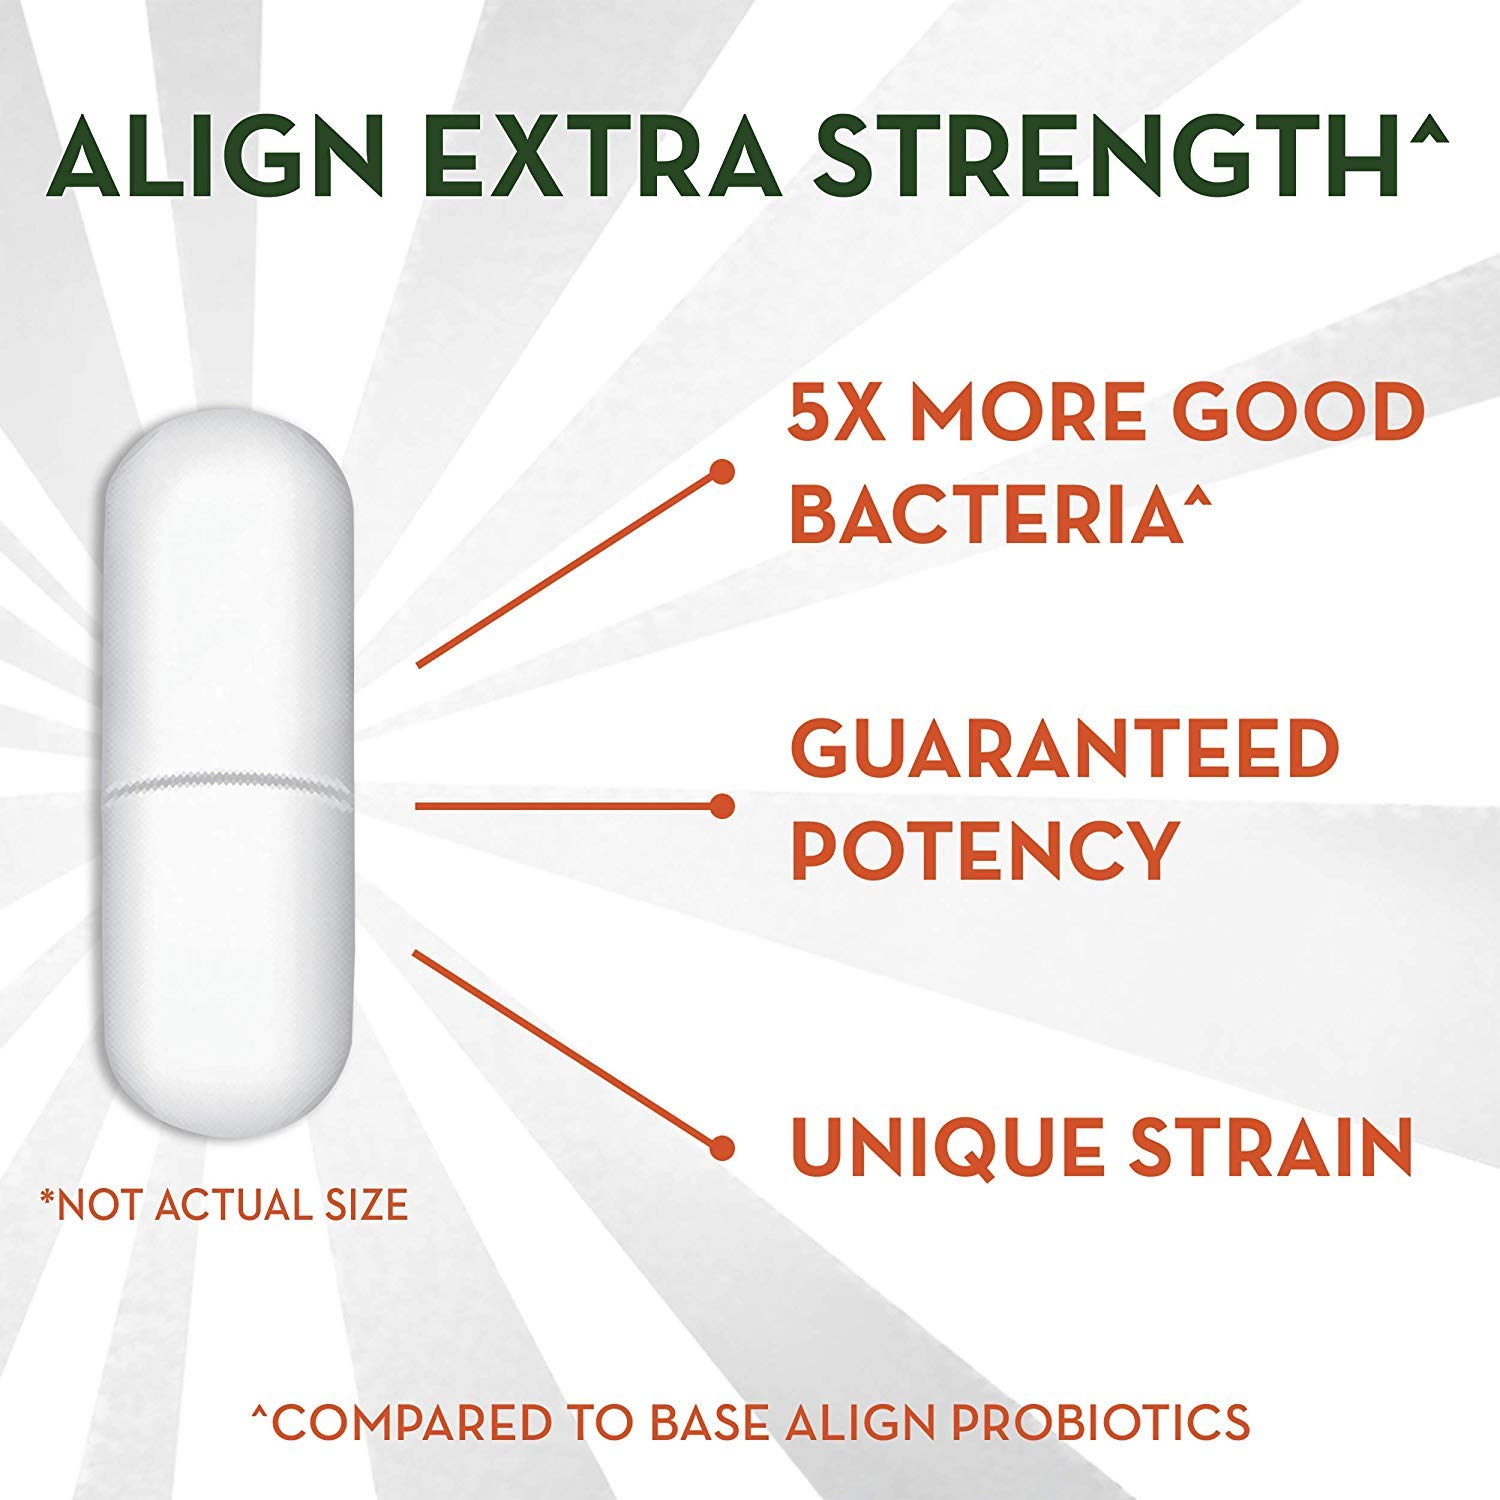 Align Extra Strength Probiotic, Probiotic Supplement for Digestive Health in Men and Women, 42 capsules, #1 Doctor Recommended Probiotics Brand(Packaging May Vary) by Align (Image #6)